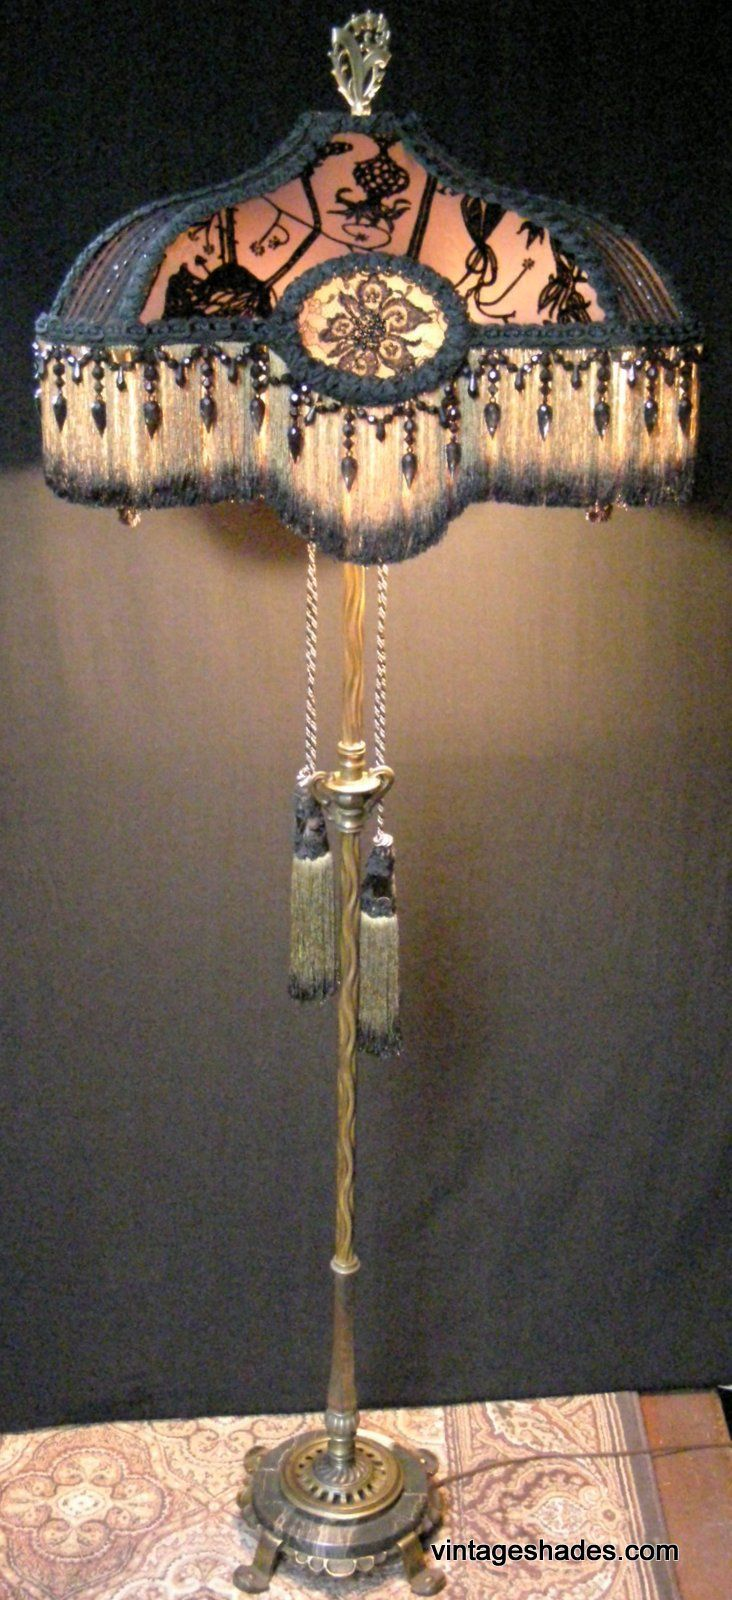 Antique Floor Lamp Redo